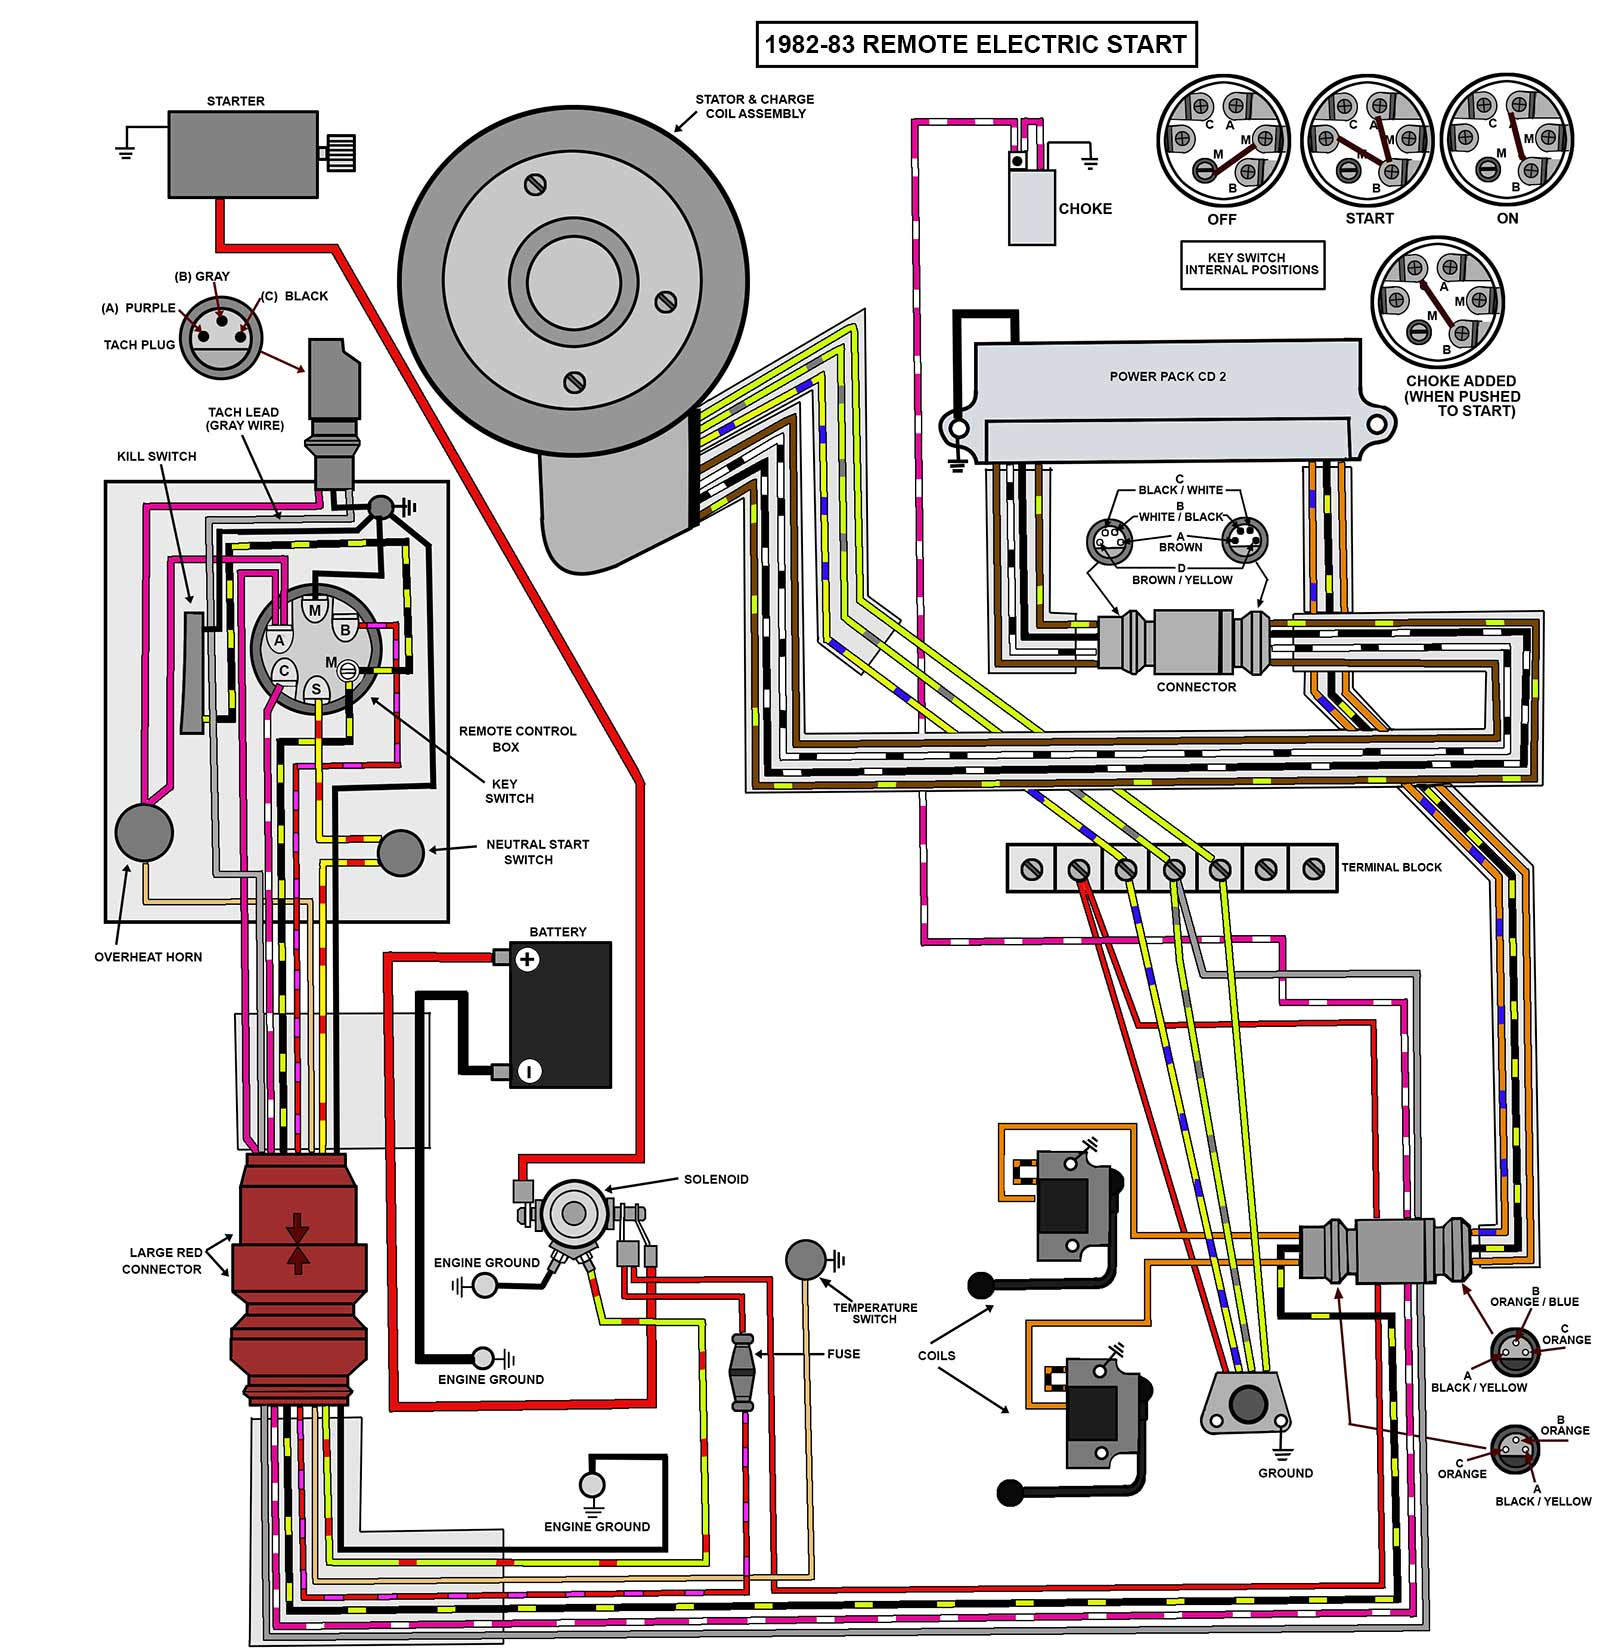 25_35_82 83_elec remote mastertech marine evinrude johnson outboard wiring diagrams evinrude wiring diagram at bayanpartner.co